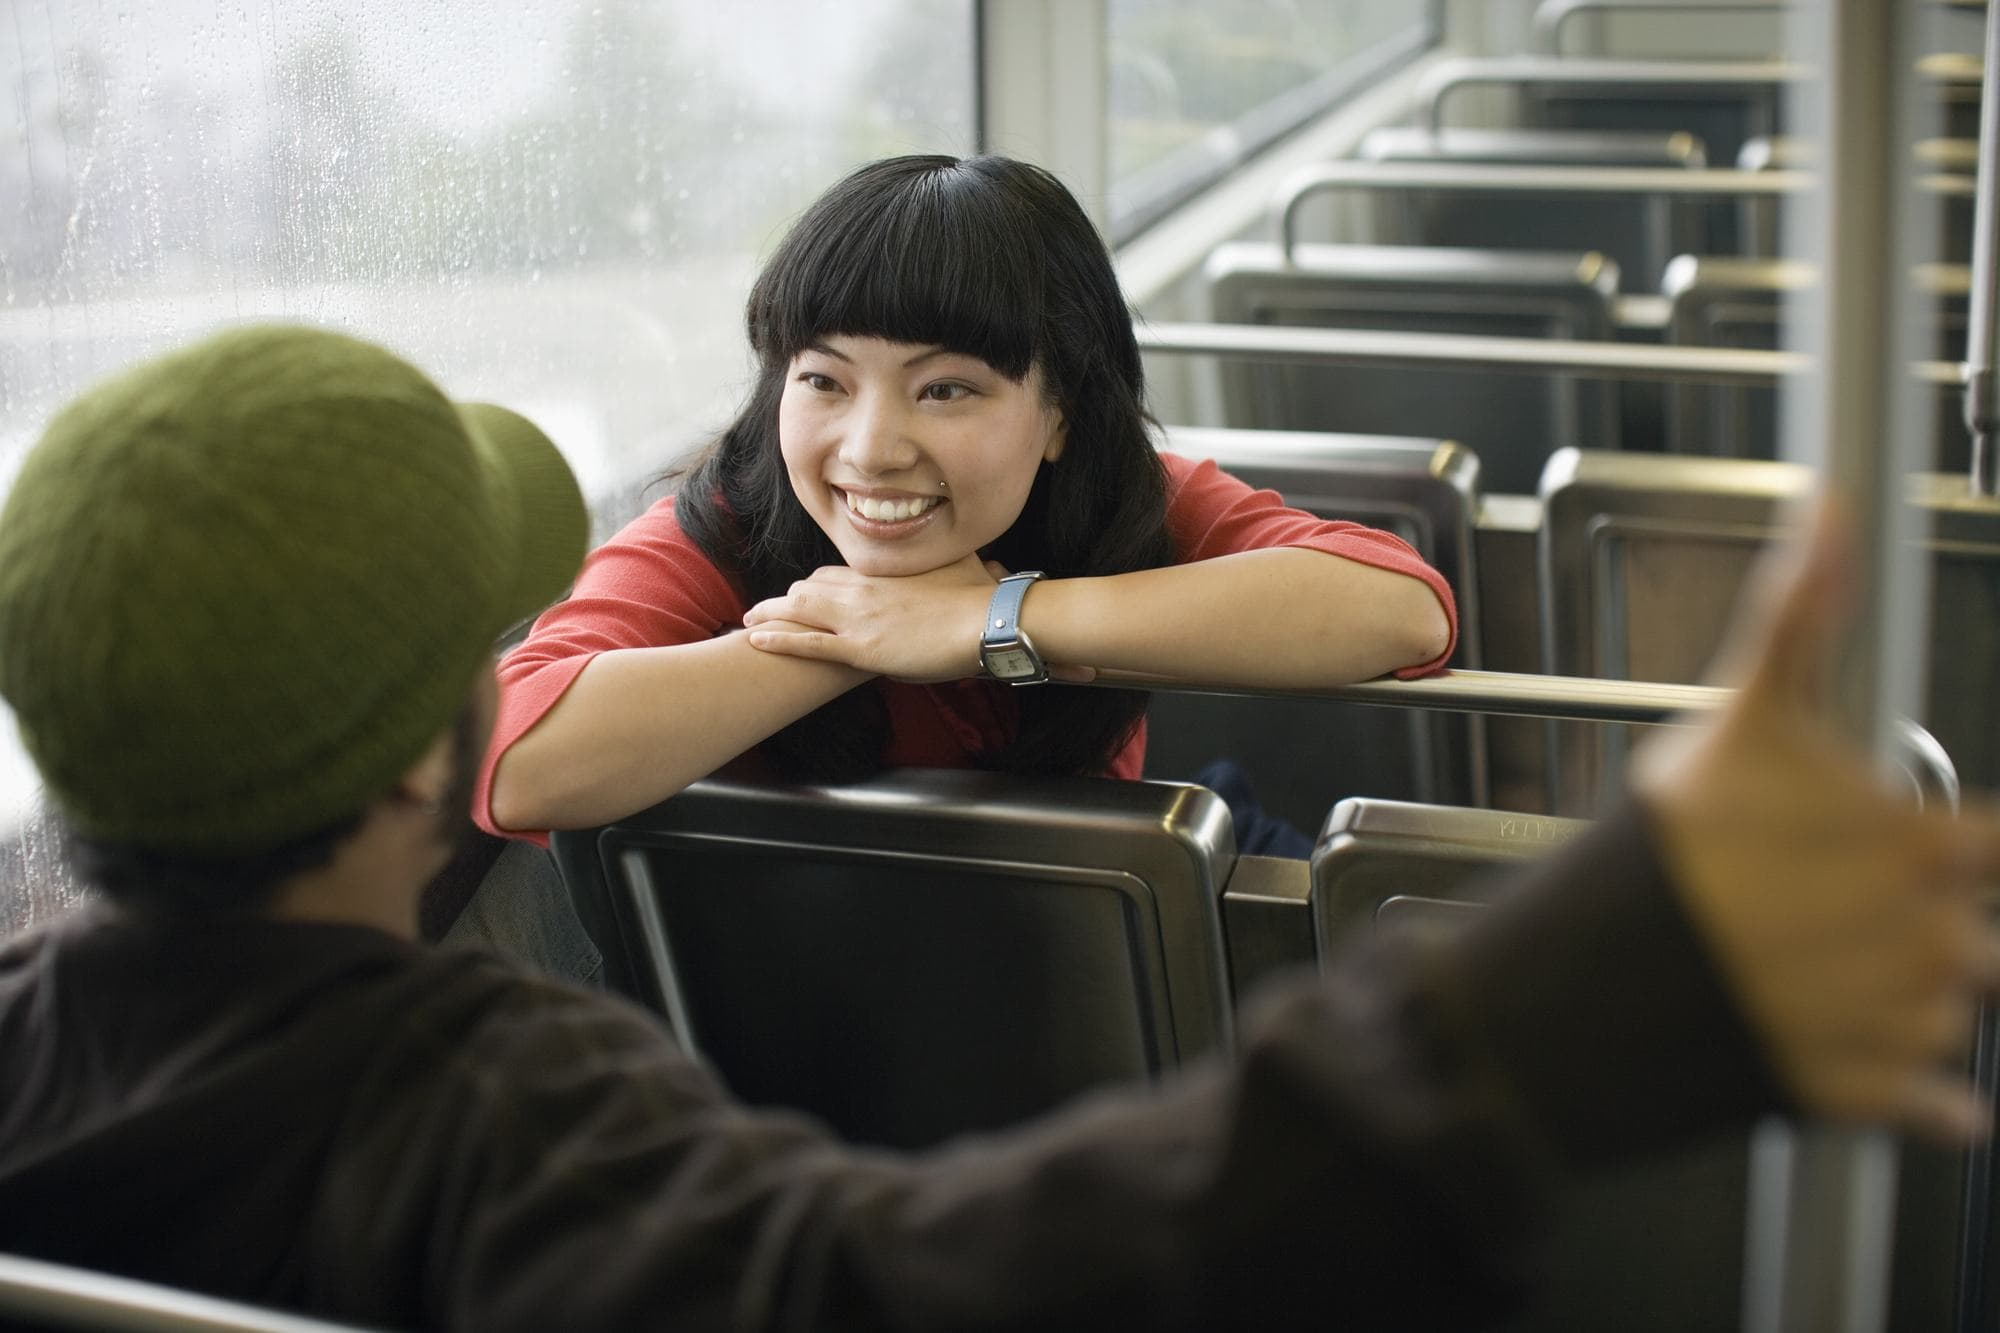 Learning a new language makes it easier to meet and communicate with people when traveling